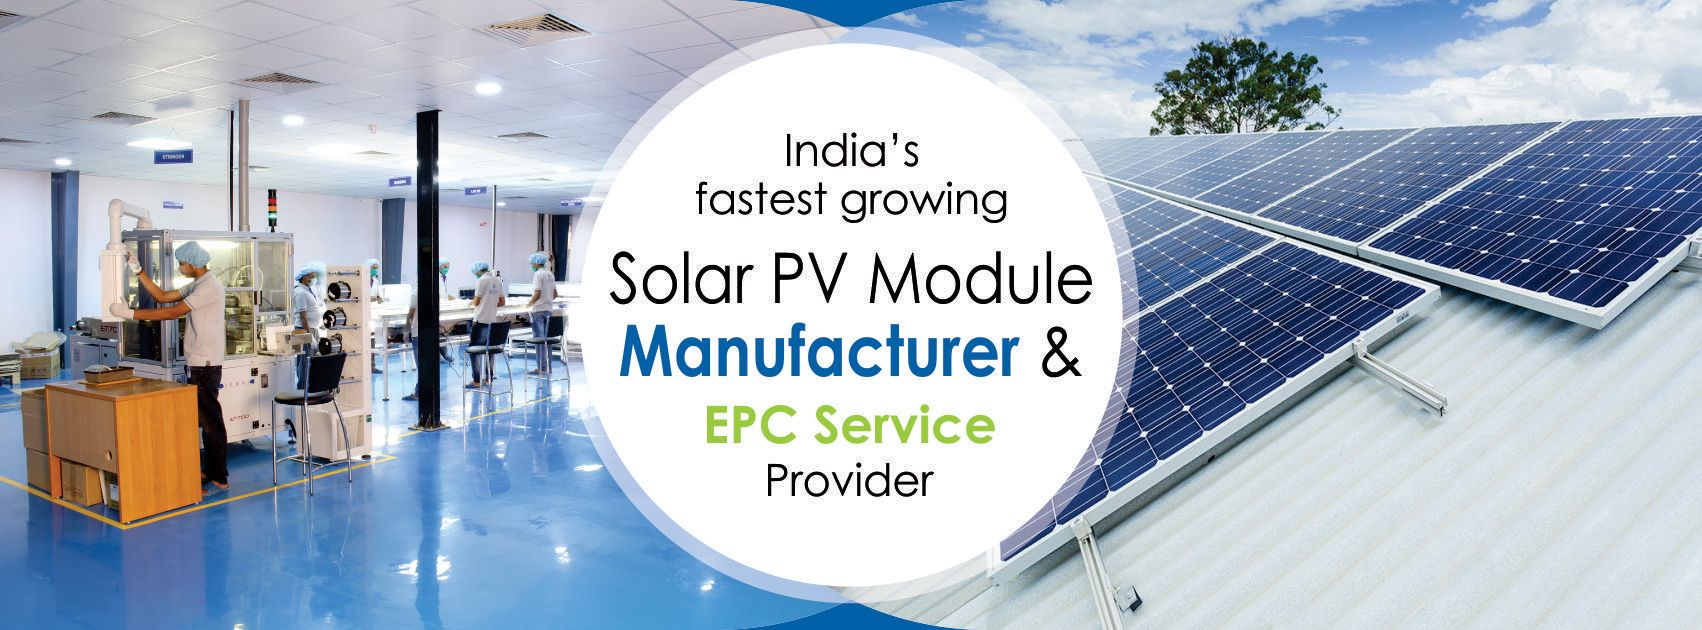 Bluebird Solar Is One Of The Fastest Growing Solar Pv Module Manufacturer And Solar Epc Service Provider In India Our Visio Solar Solar Pv Roof Solar Panel